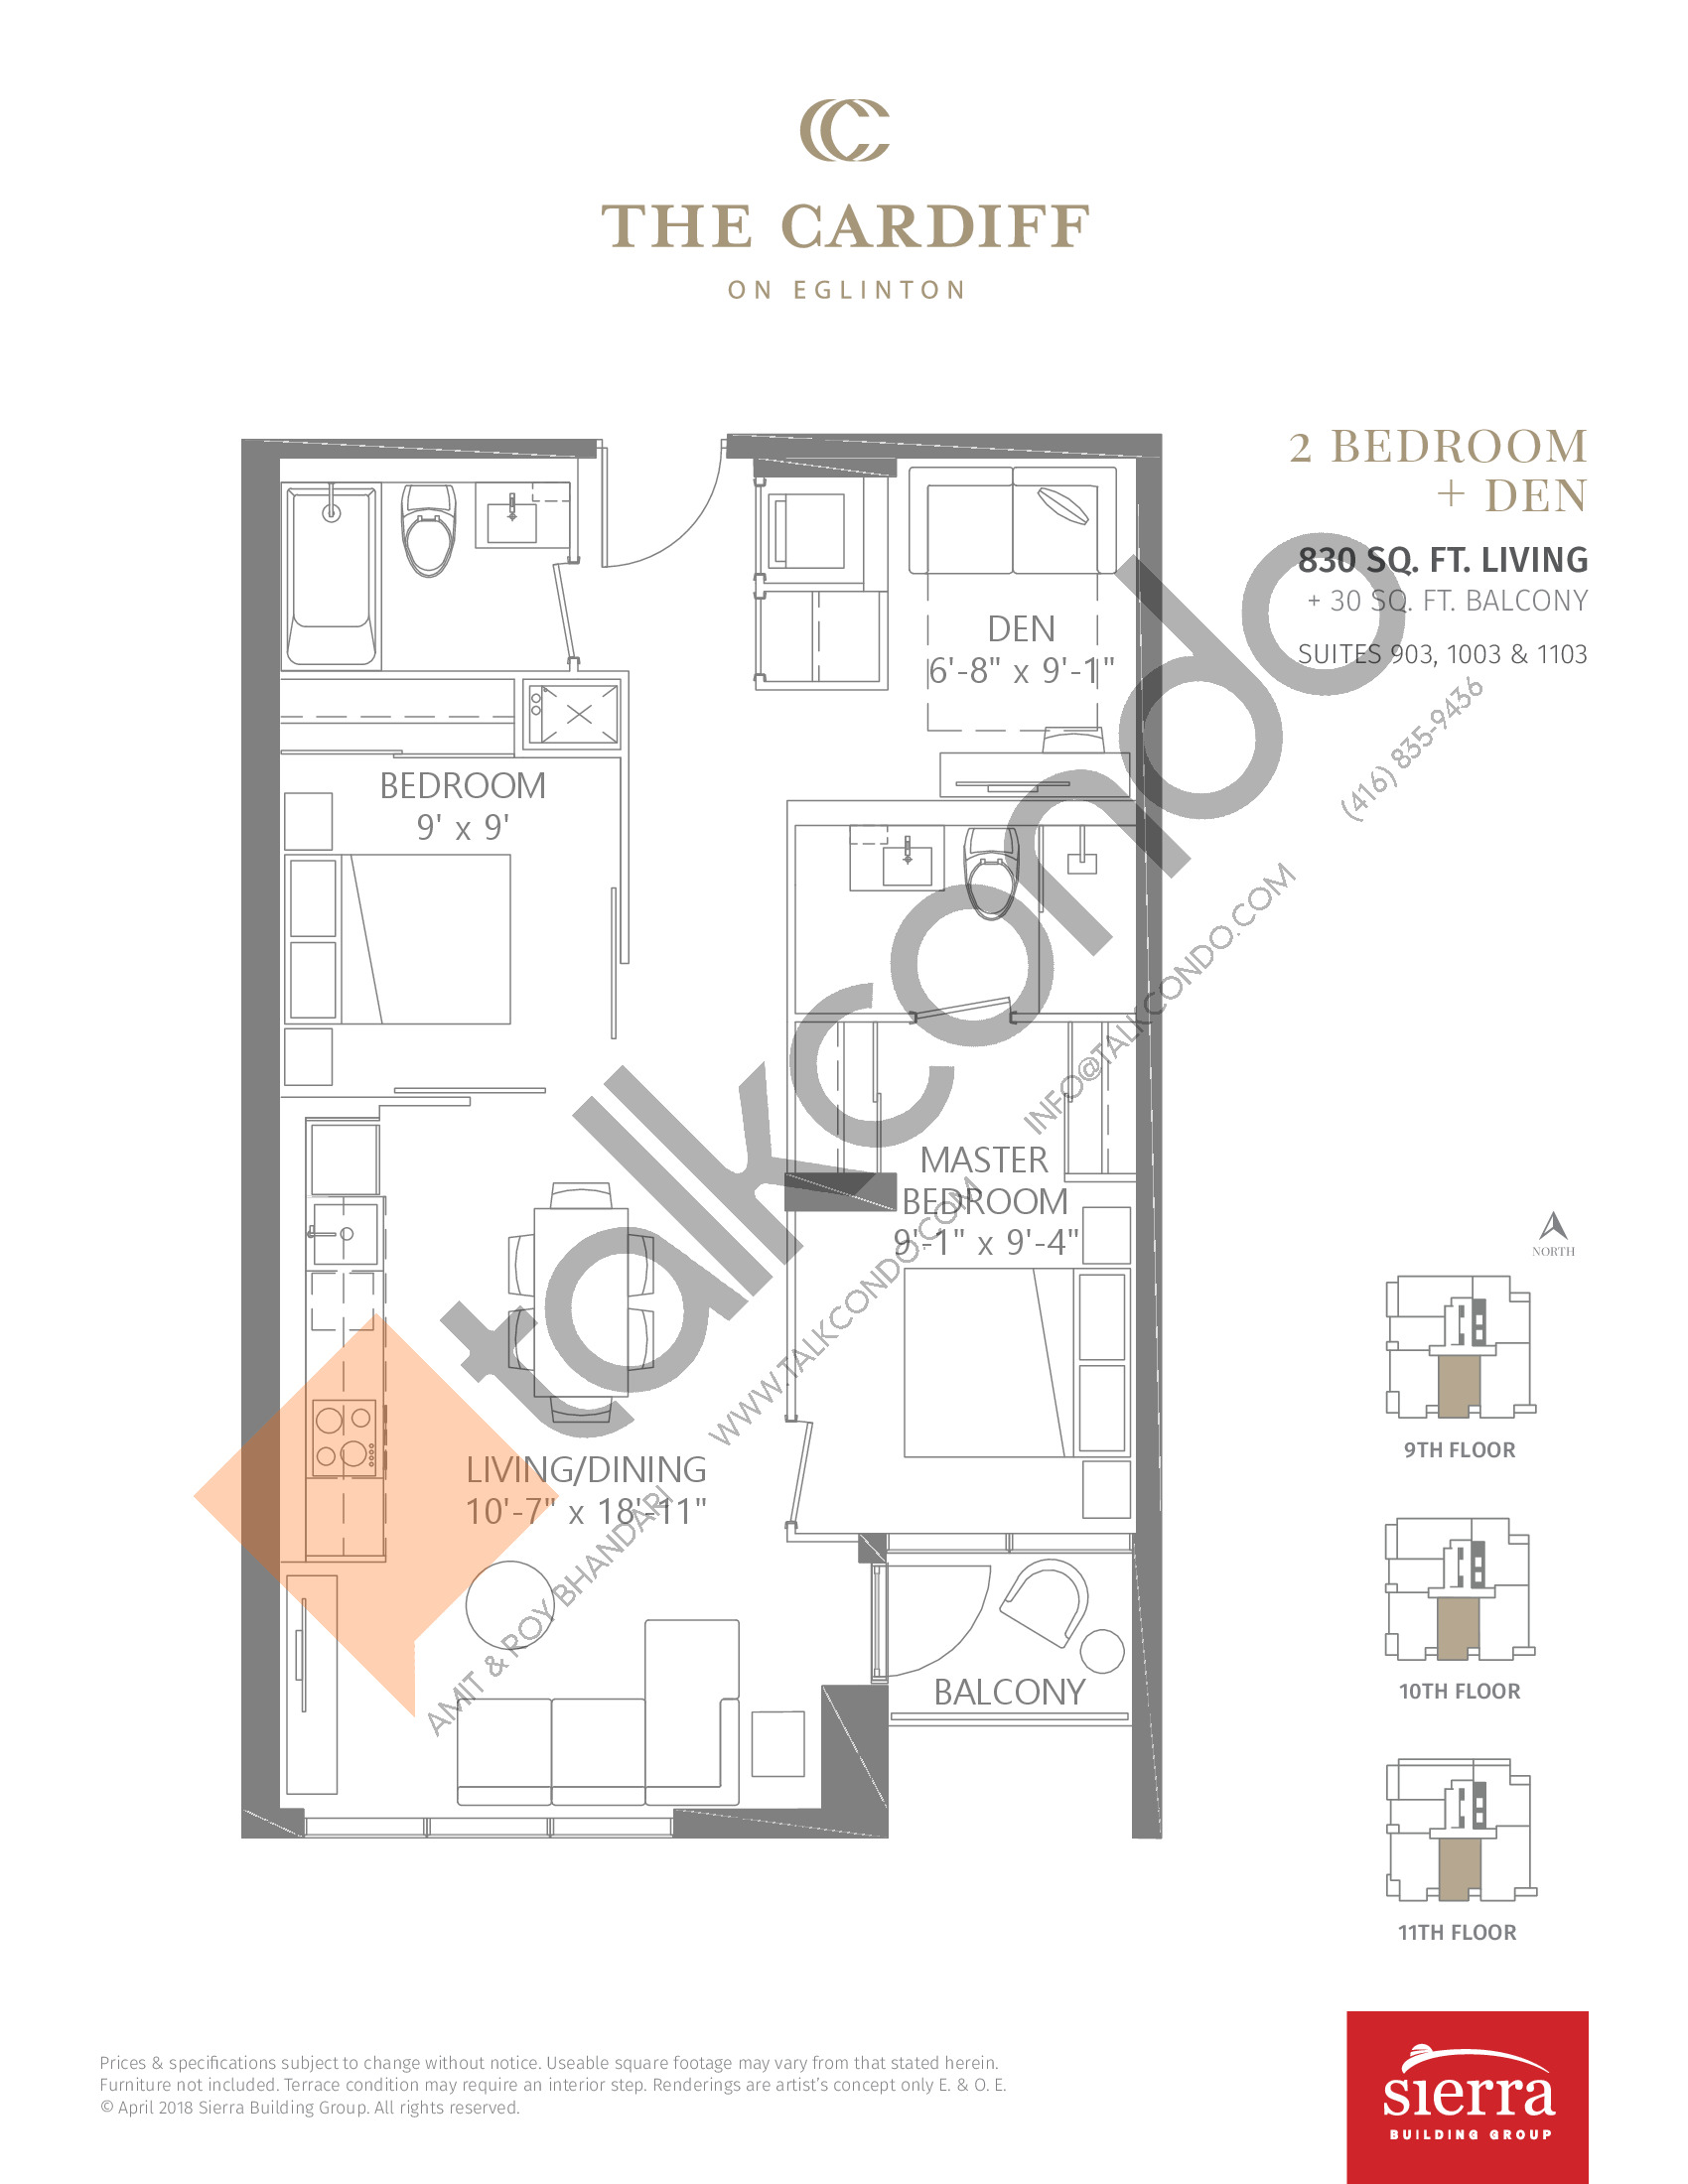 Suite 903, 1003 & 1103 Floor Plan at The Cardiff Condos on Eglinton - 830 sq.ft